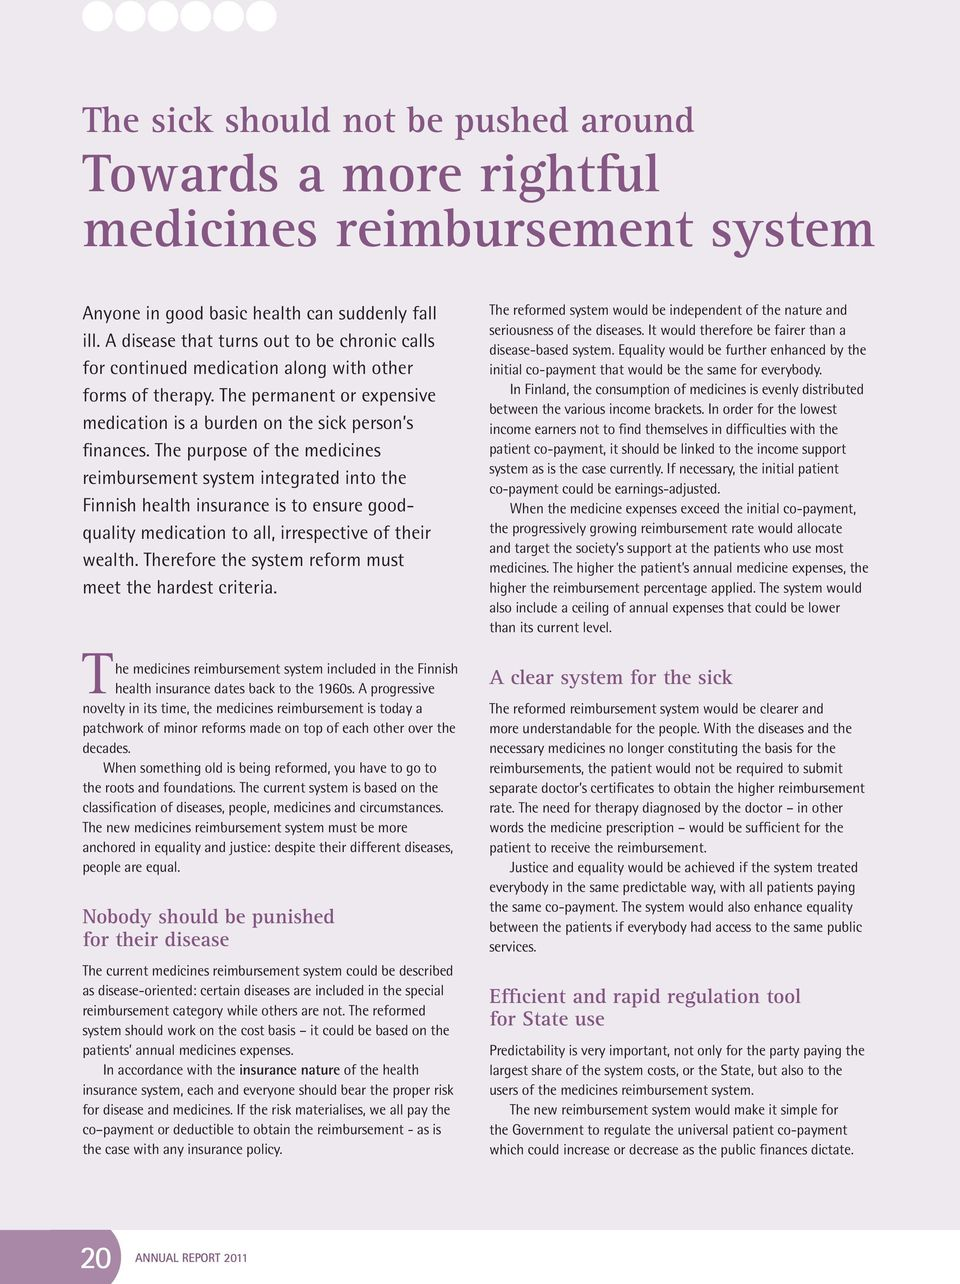 The purpose of the medicines reimbursement system integrated into the Finnish health insurance is to ensure goodquality medication to all, irrespective of their wealth.